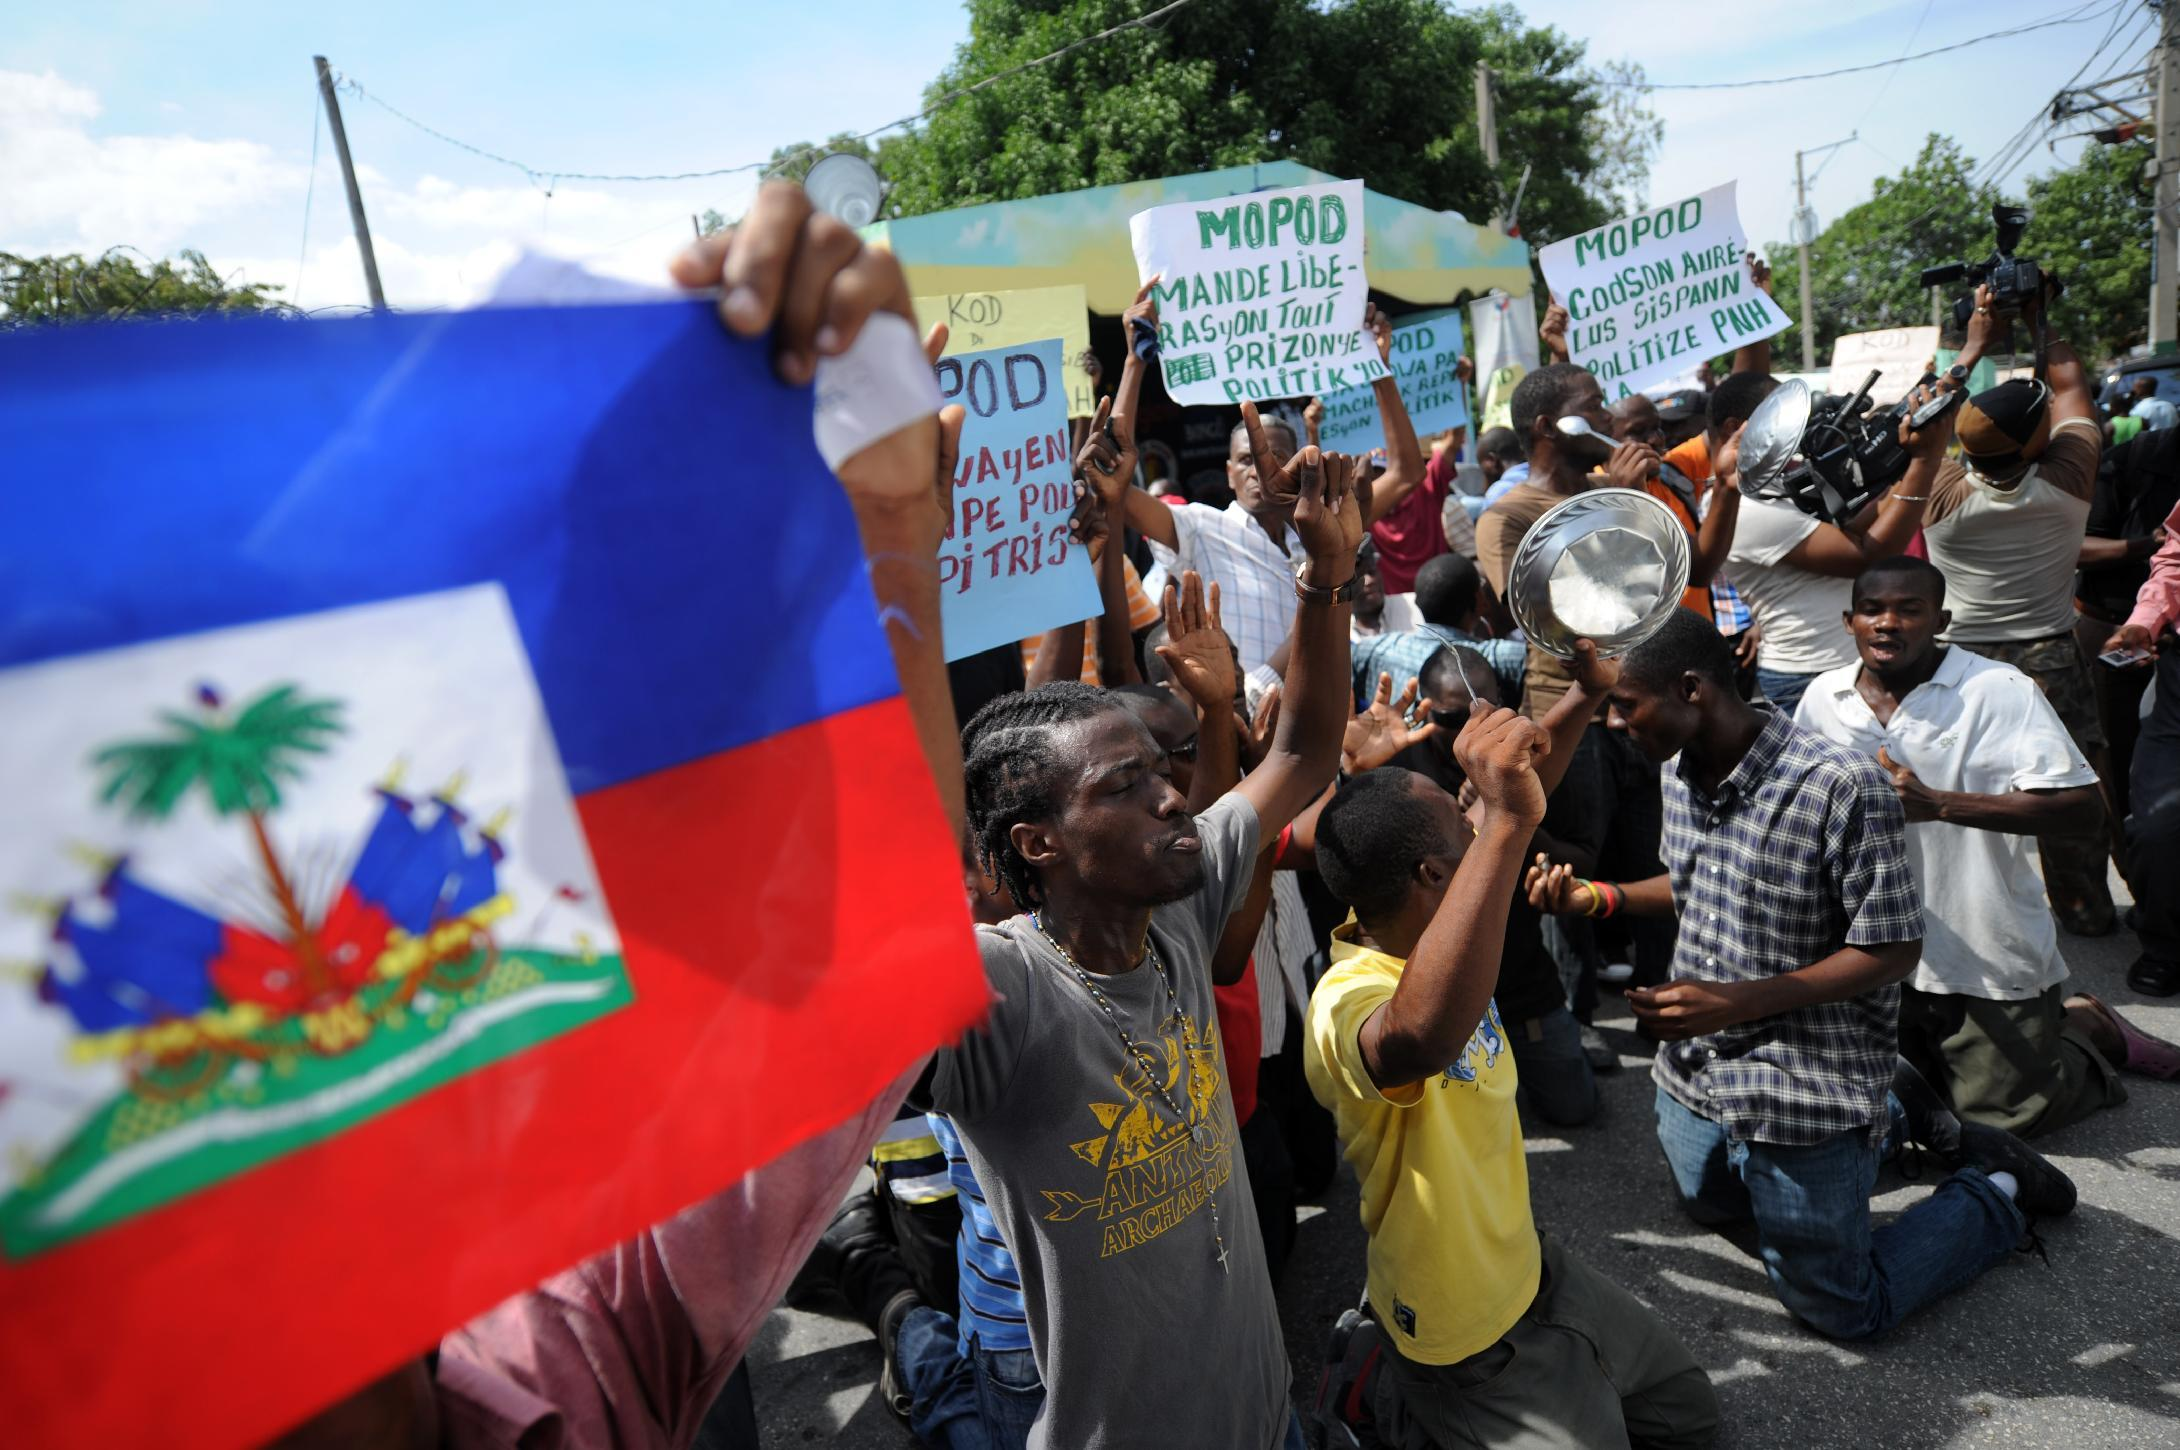 Members and supporters of opposition parties protest on October 23, 2014 in Port au Prince (AFP Photo/Hector Retamal)